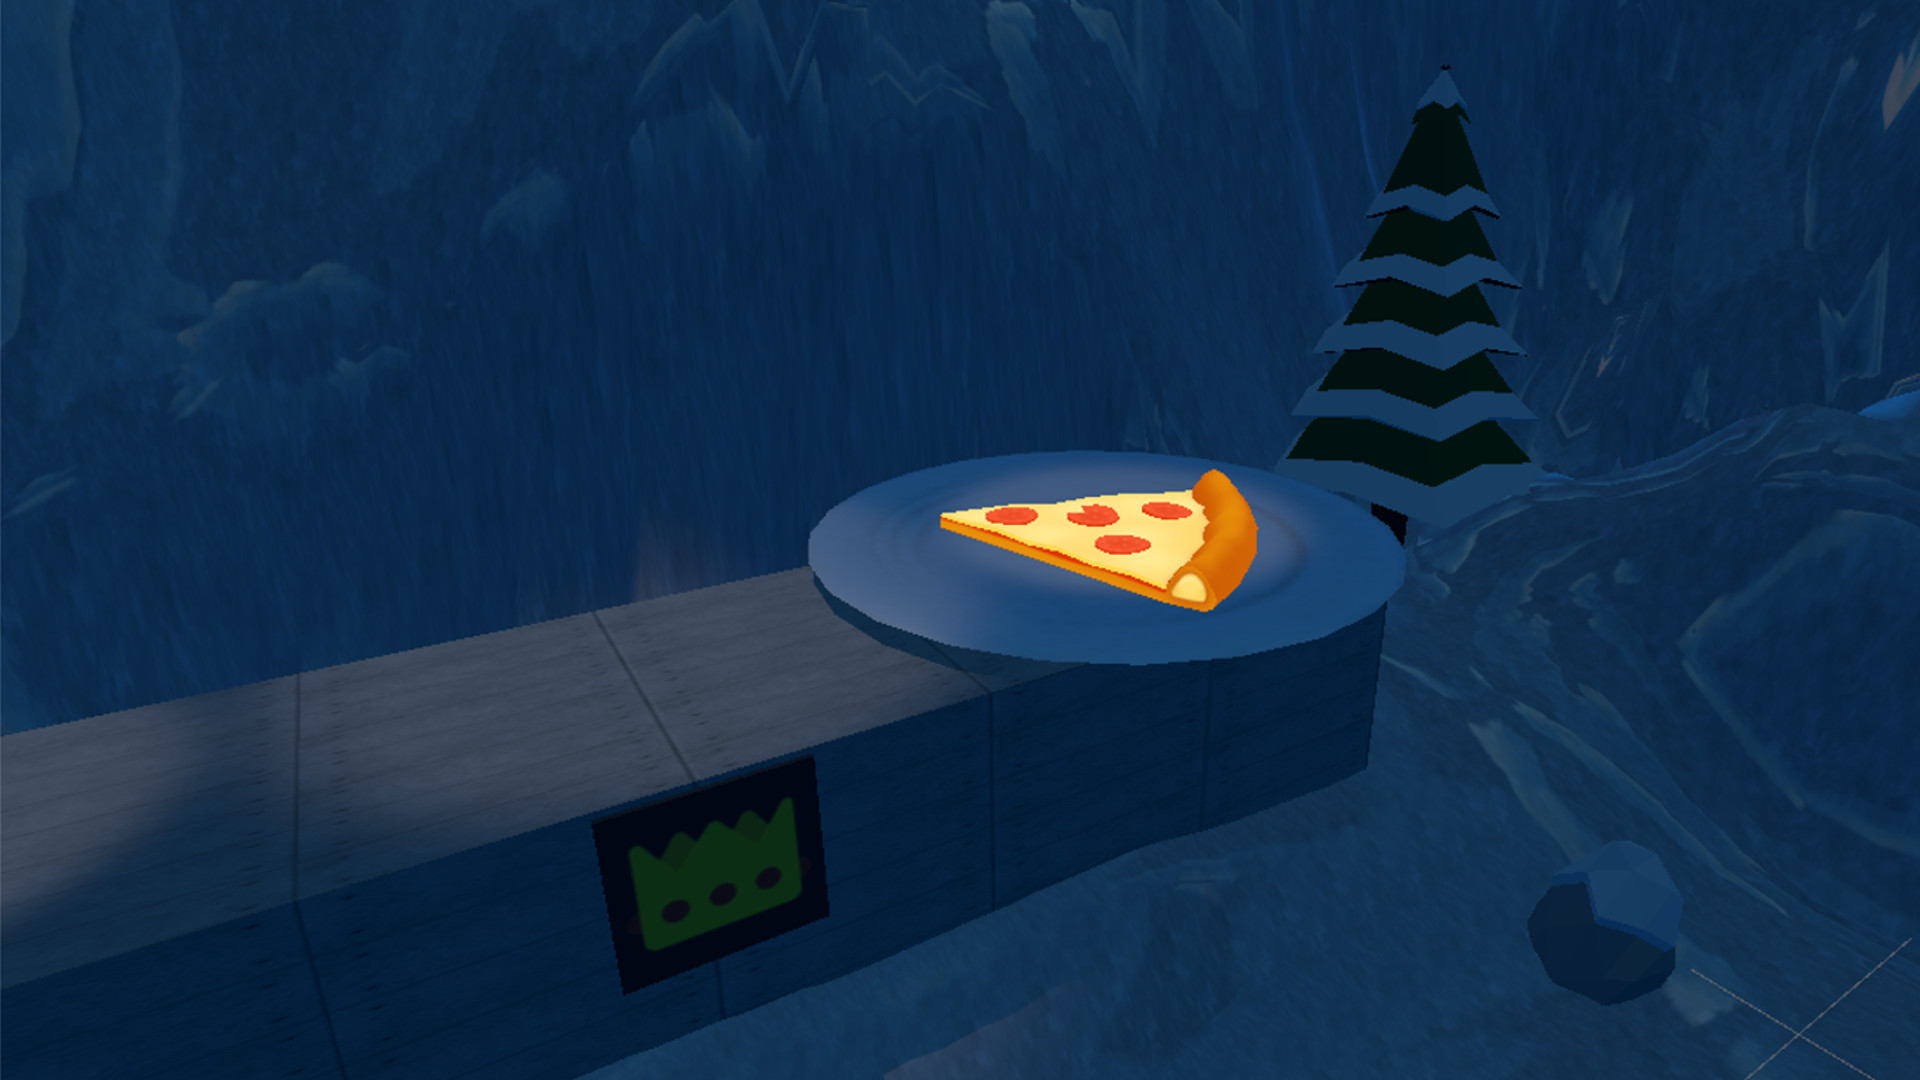 TheSecretGame2 - A Piece Of Pizza screenshot